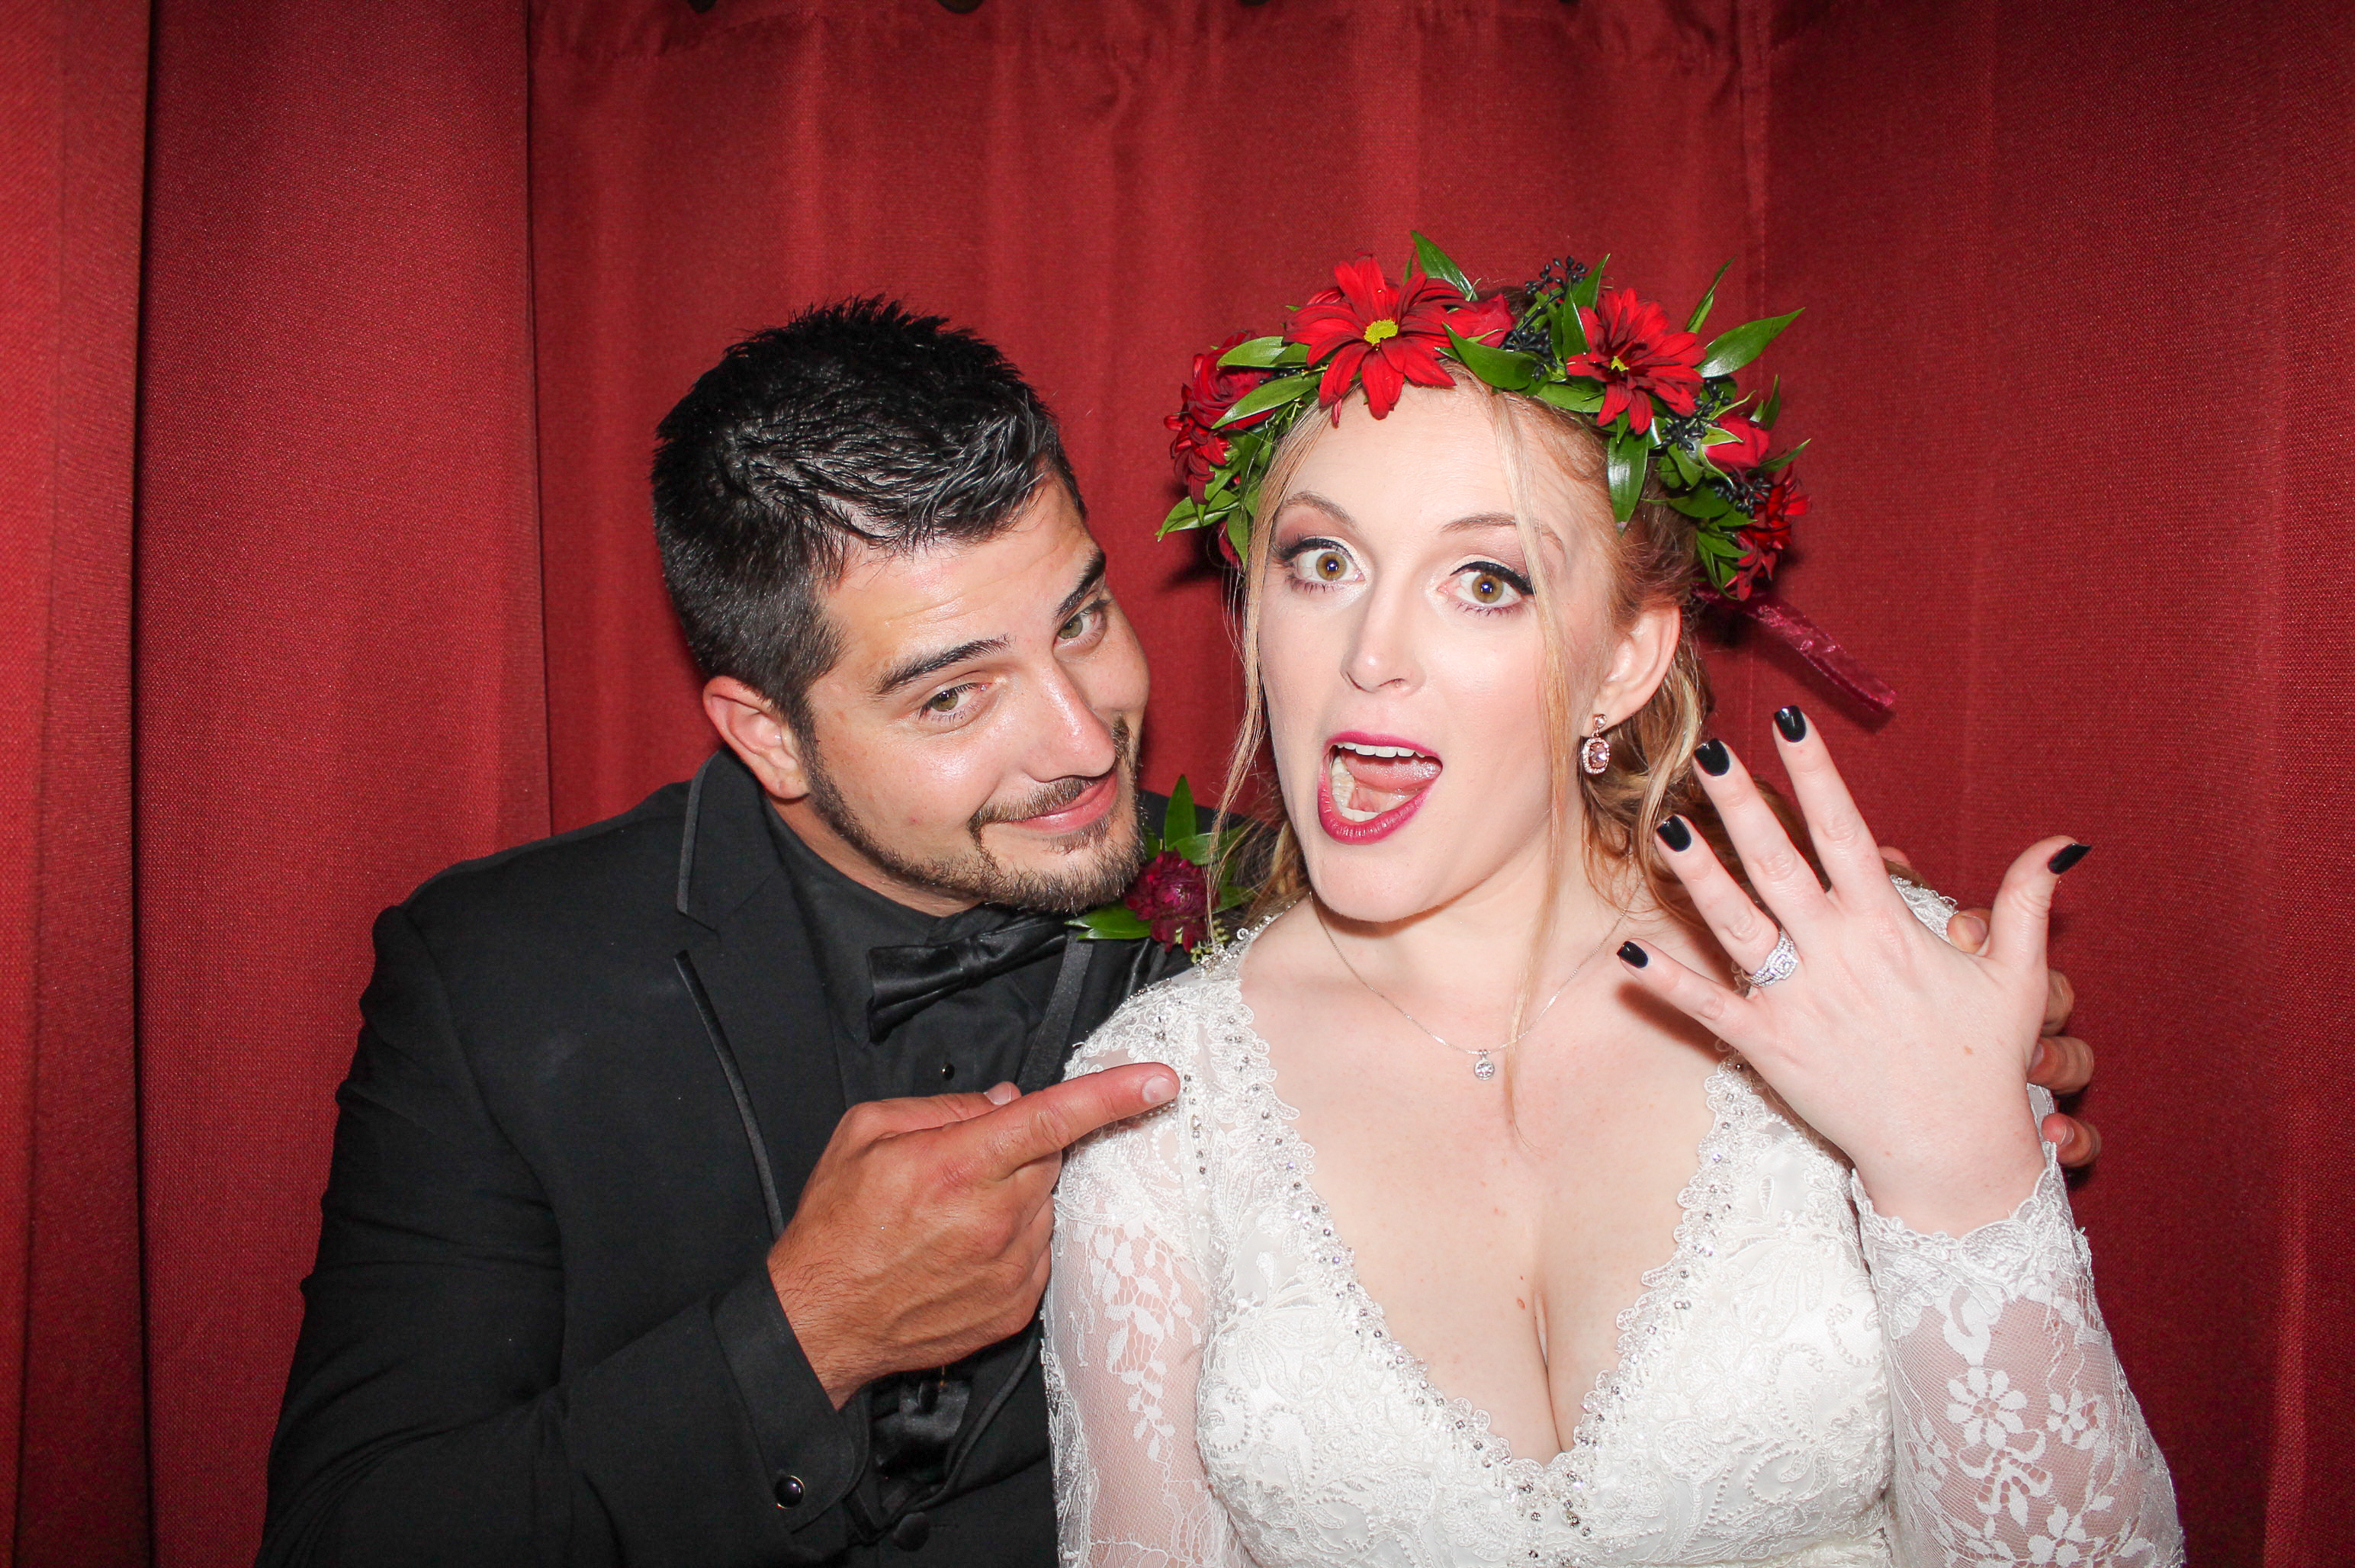 Anna and Brandon's Wedding Photo Booth